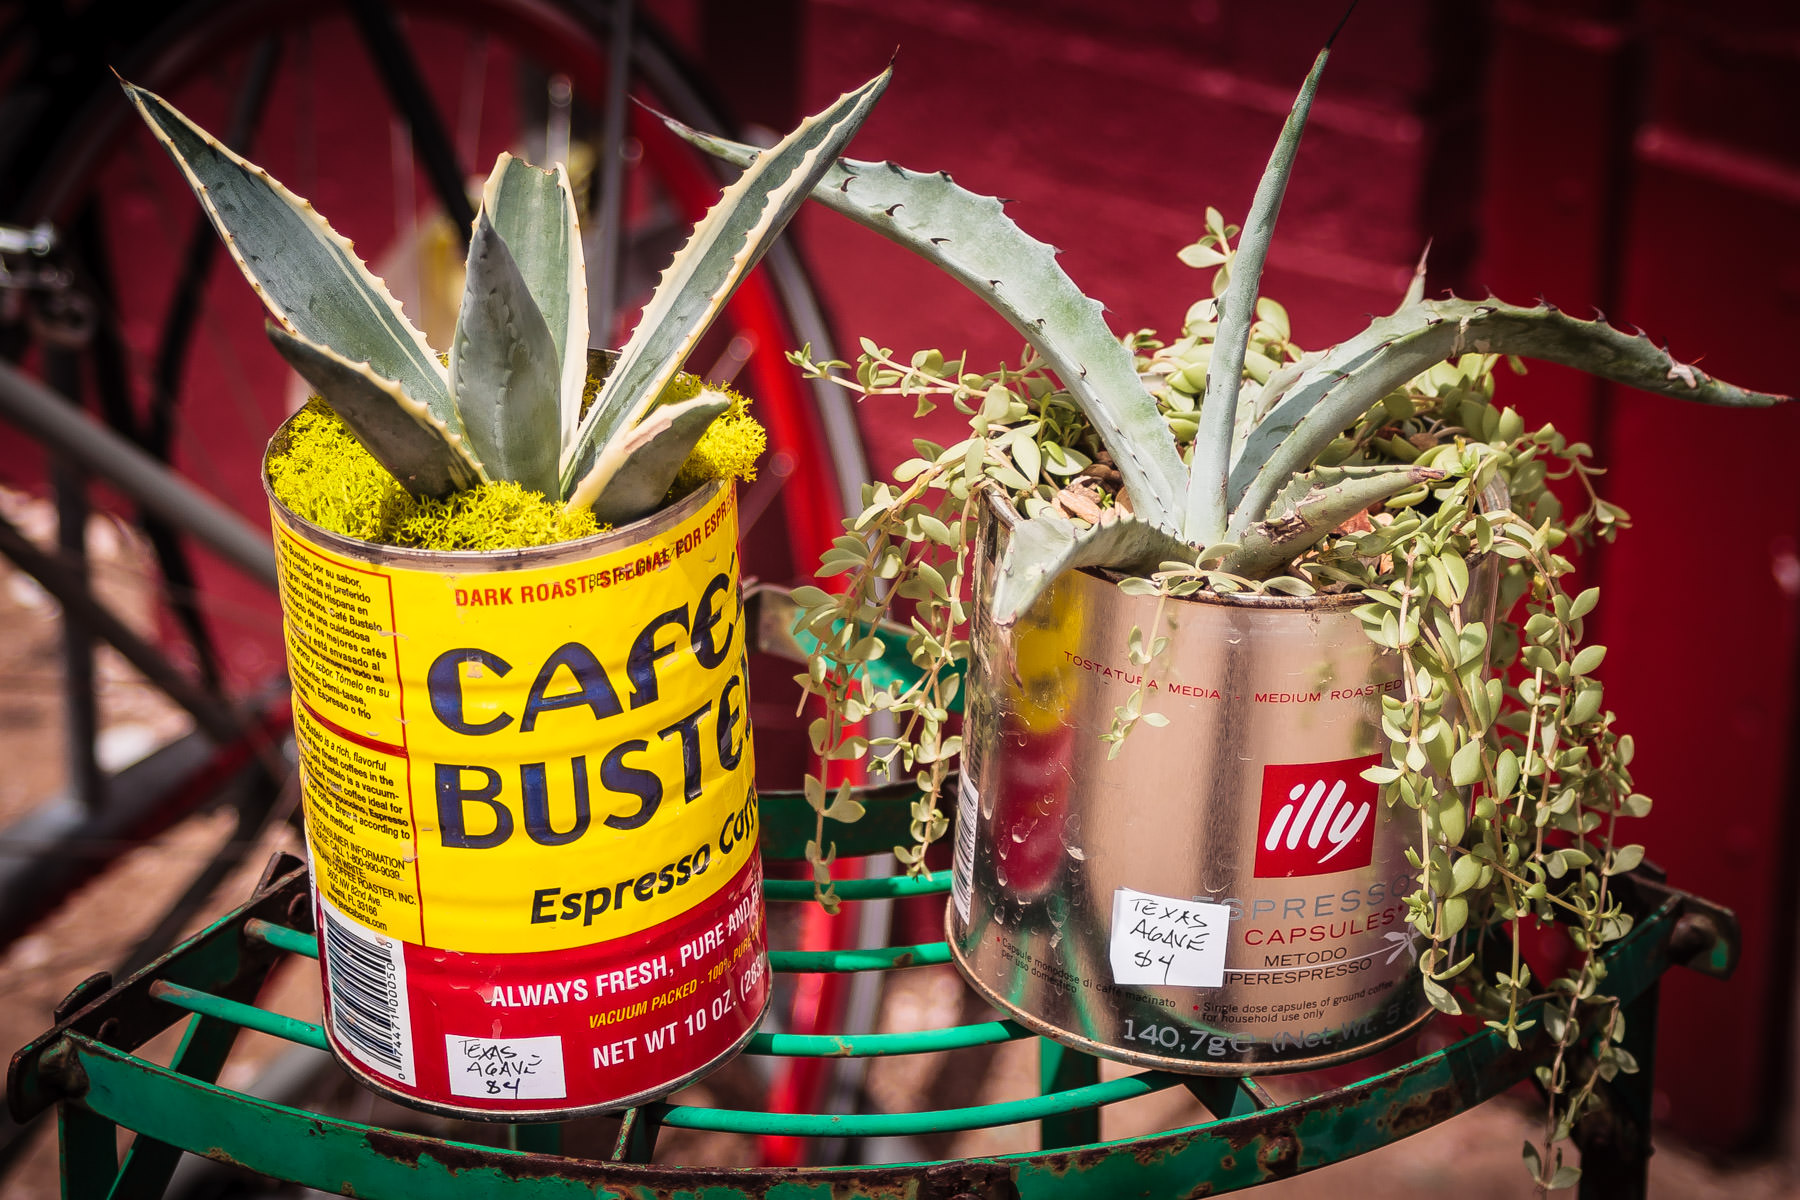 Empty coffee cans re-purposed into planters, spotted outside a shop in Oak Cliff, Dallas.